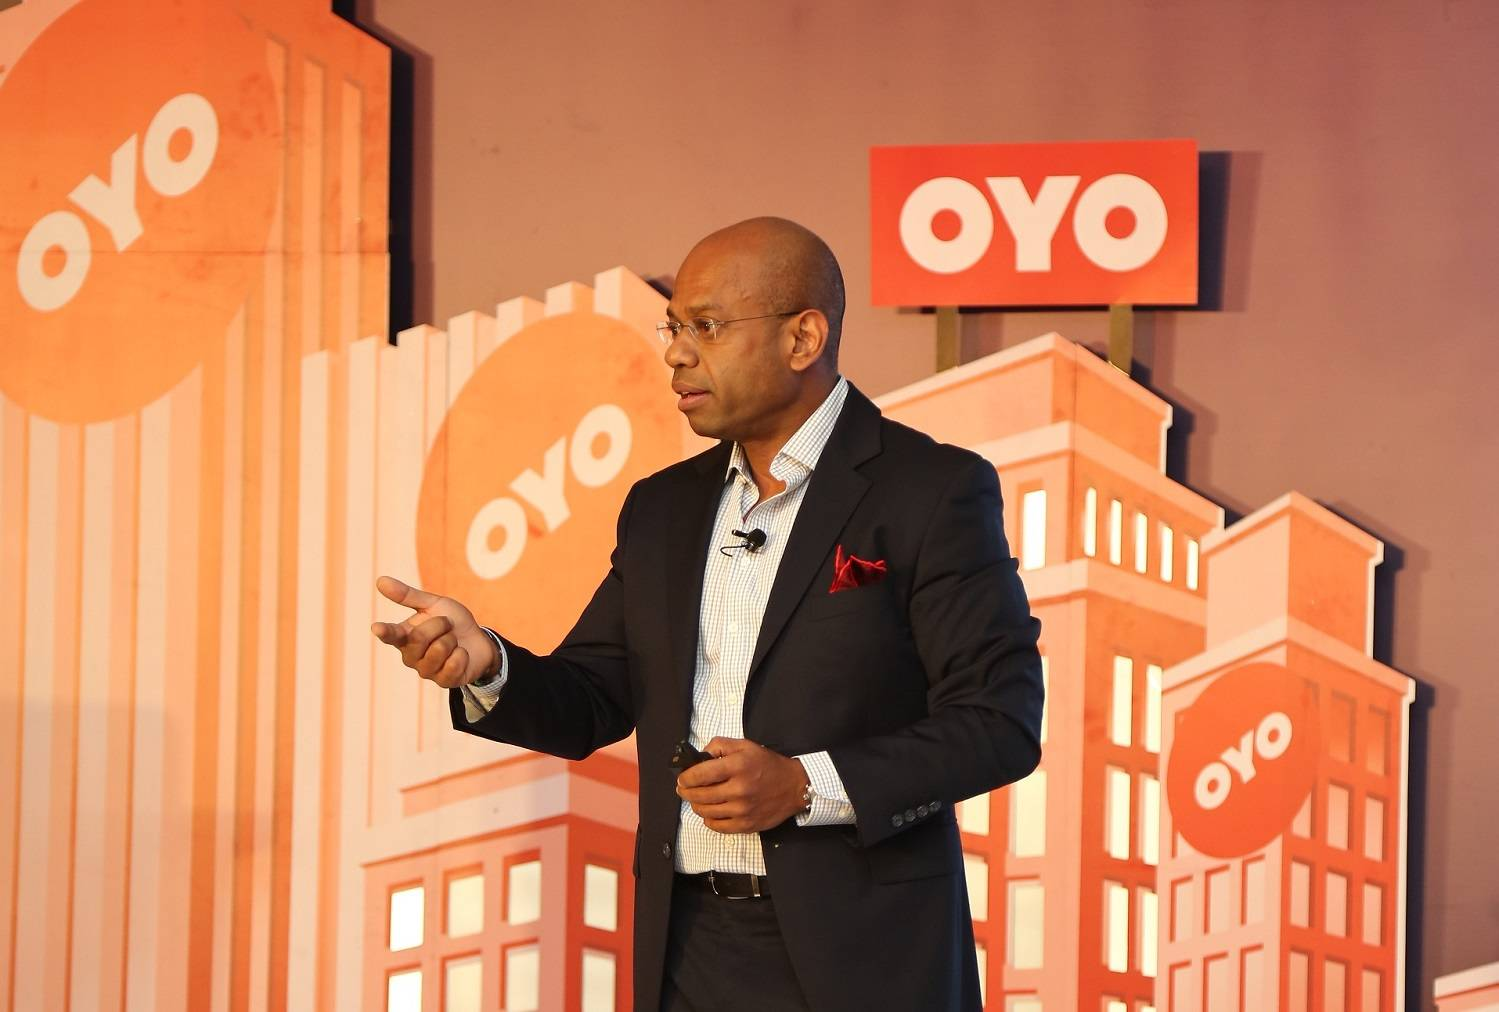 OYO hotels: Latest News, Articles on OYO hotels | Business Insider India